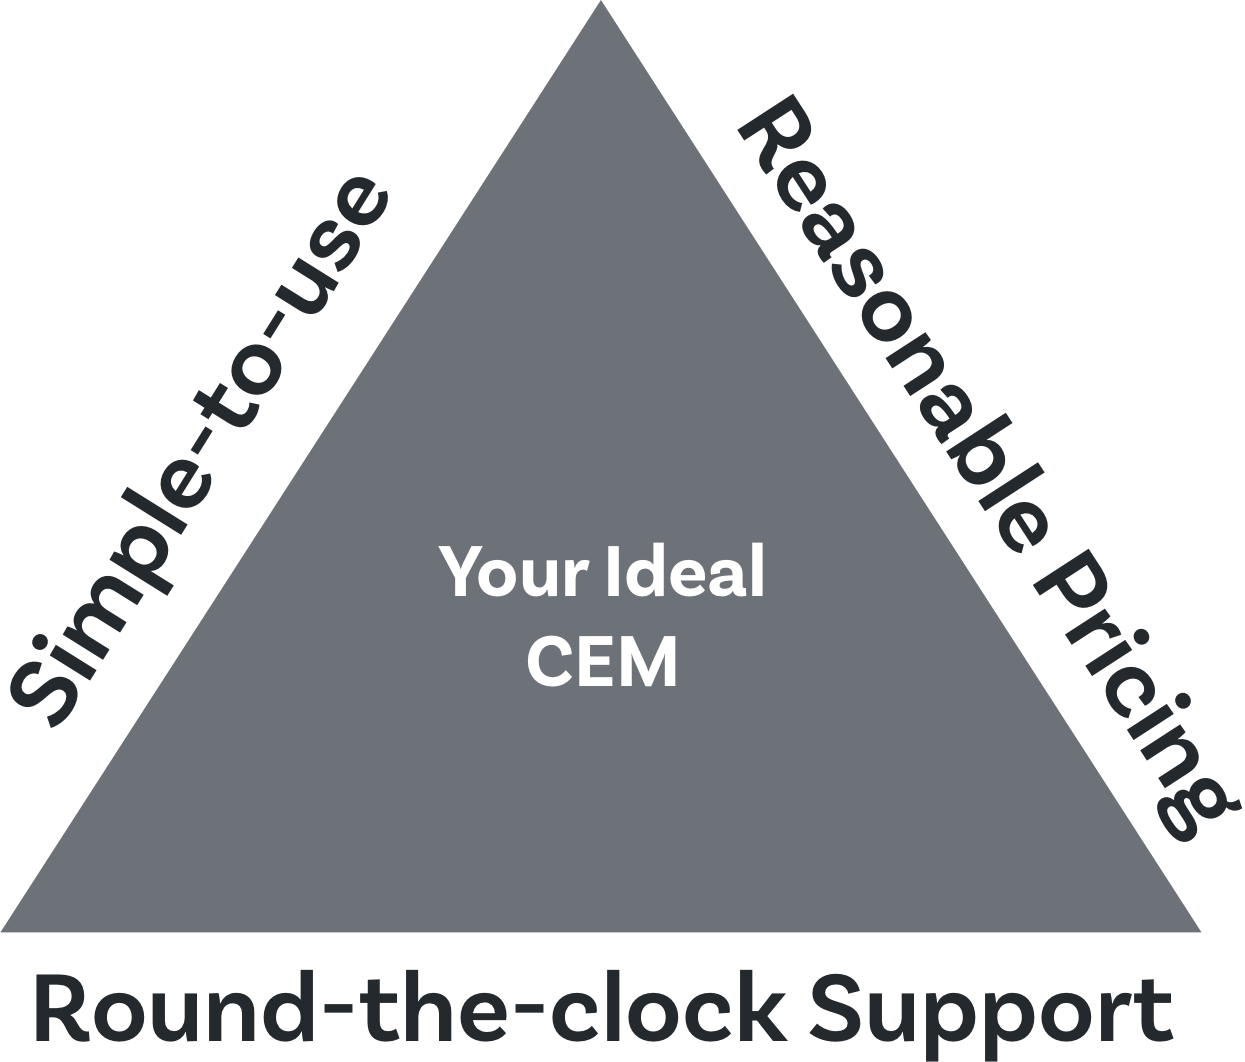 Fill the potholes in the customer journey and ensure a smooth ride for all your customers by choosing a good CEM platform